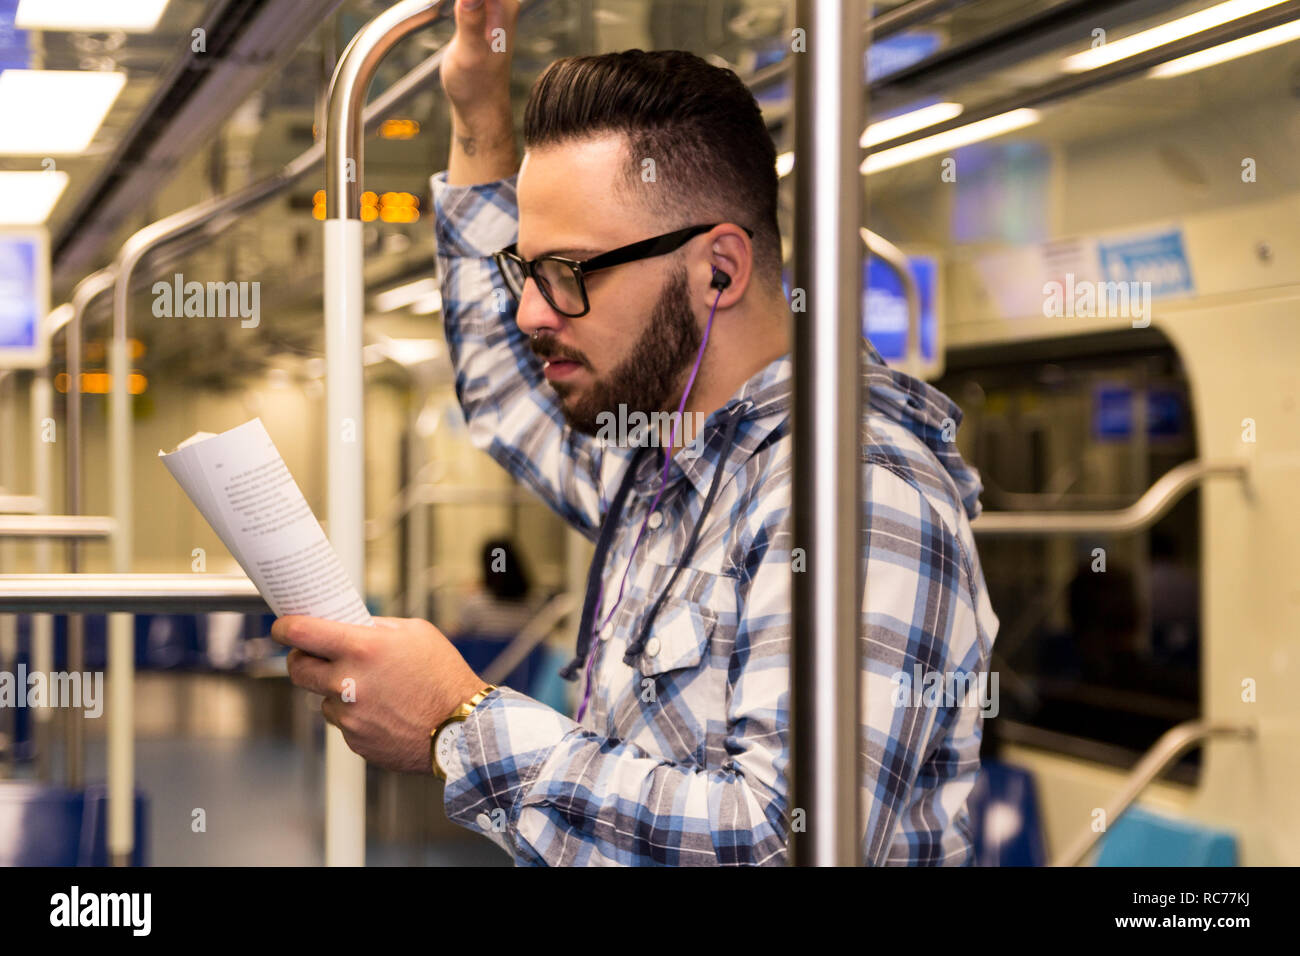 Concept of determination, commitment, concentration, journey. Smart scholar wearing checked pattern shirt and glasses in public transport. - Stock Image